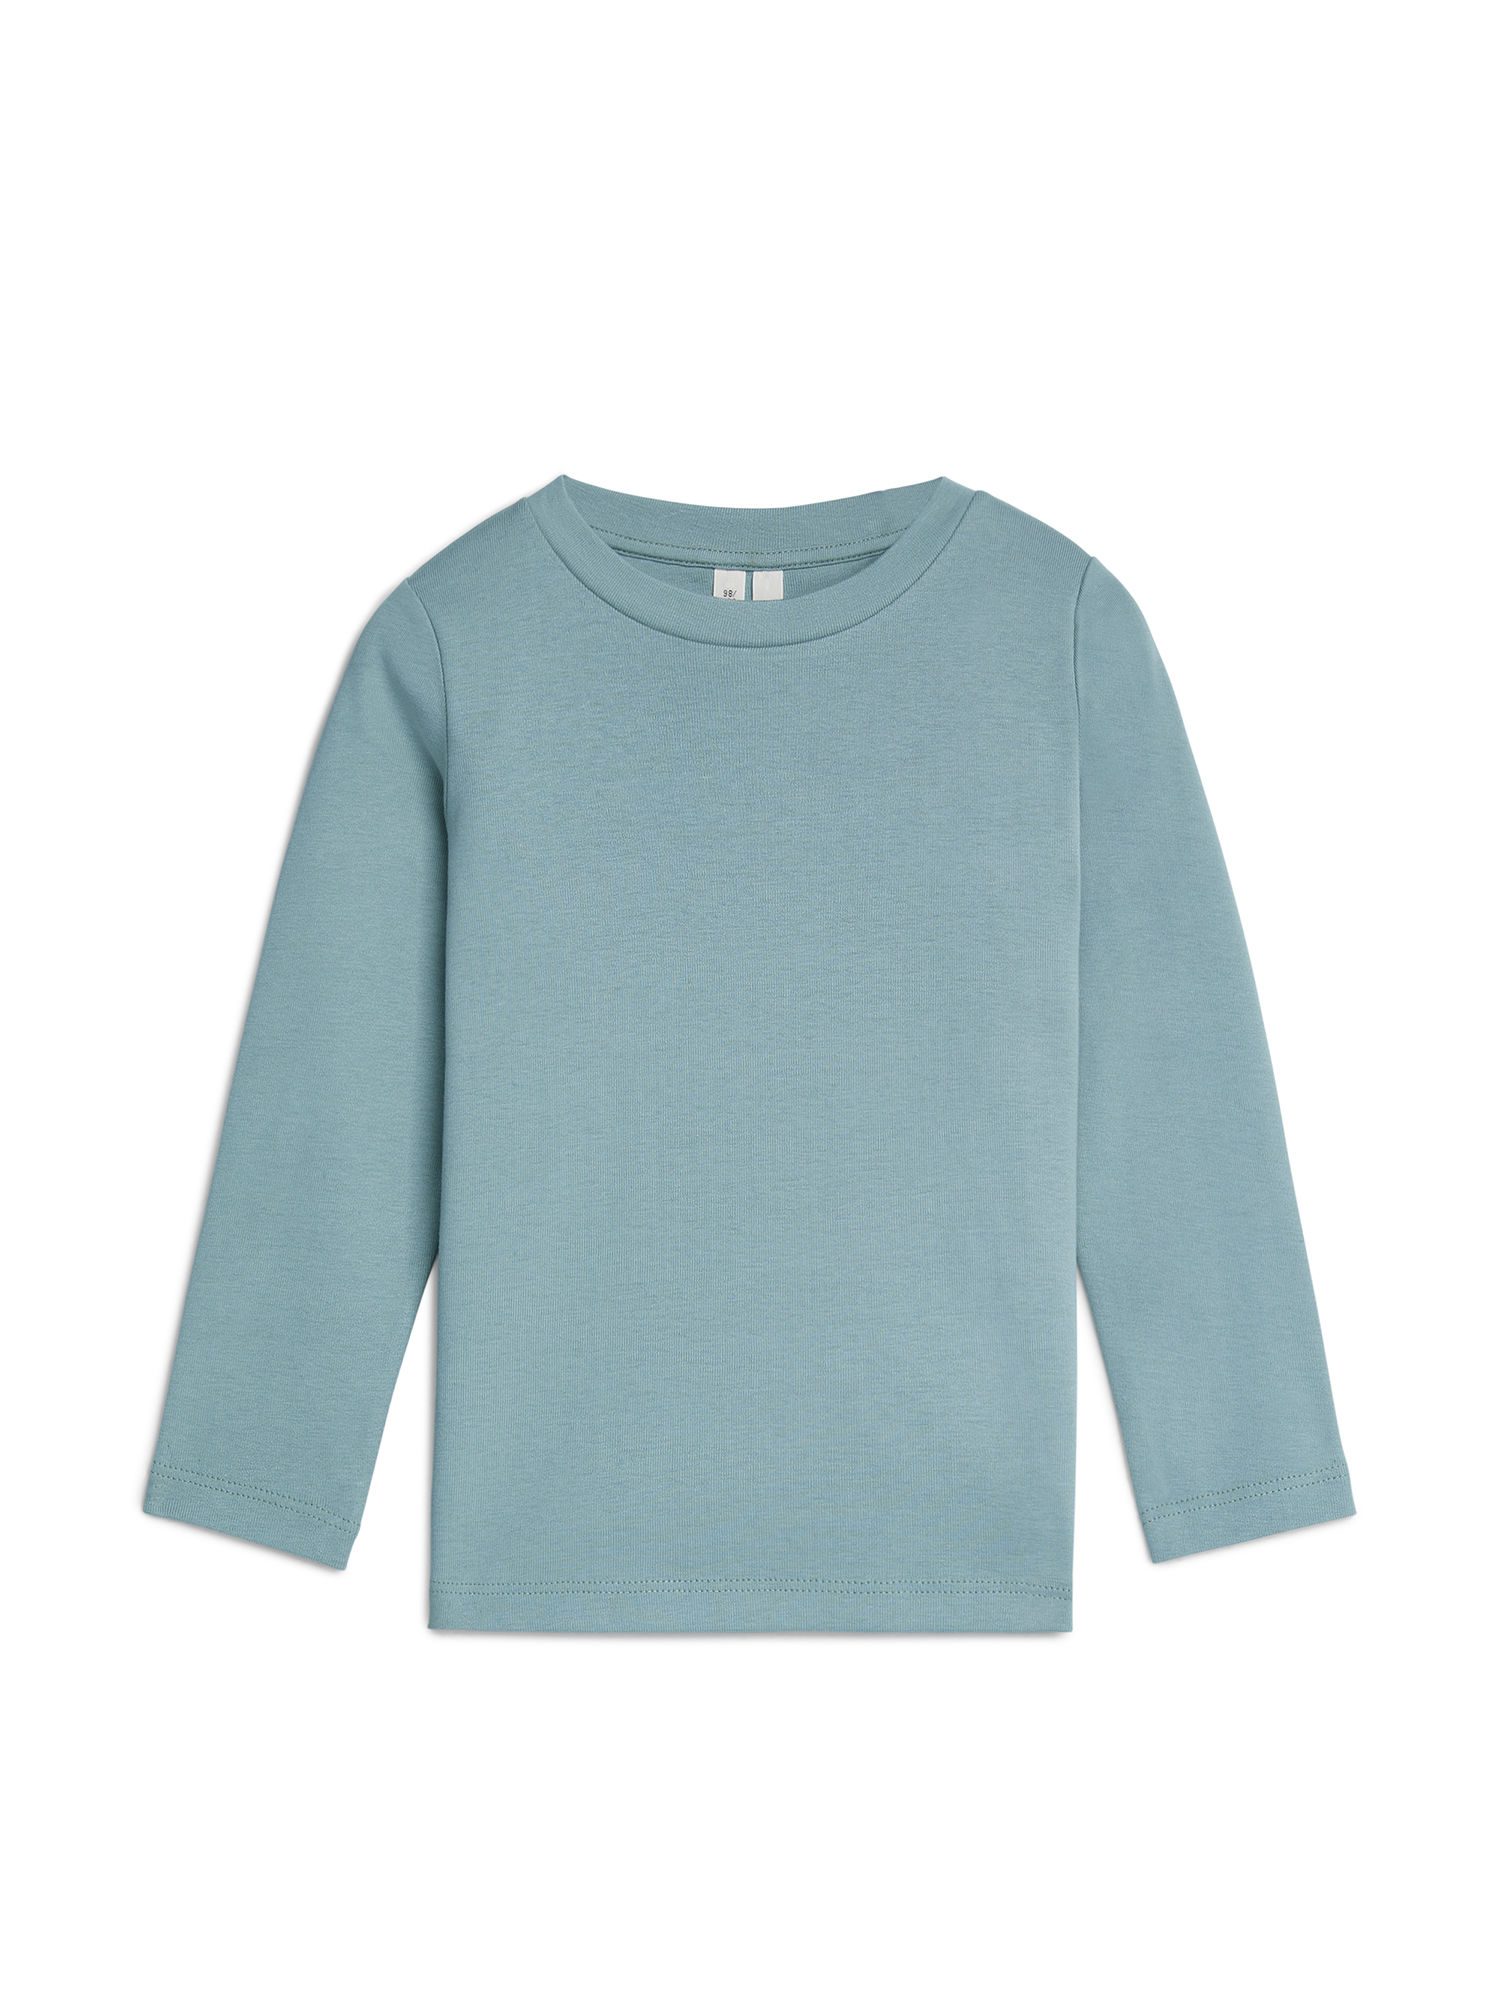 Fabric Swatch image of Arket long-sleeve t-shirt in turquoise